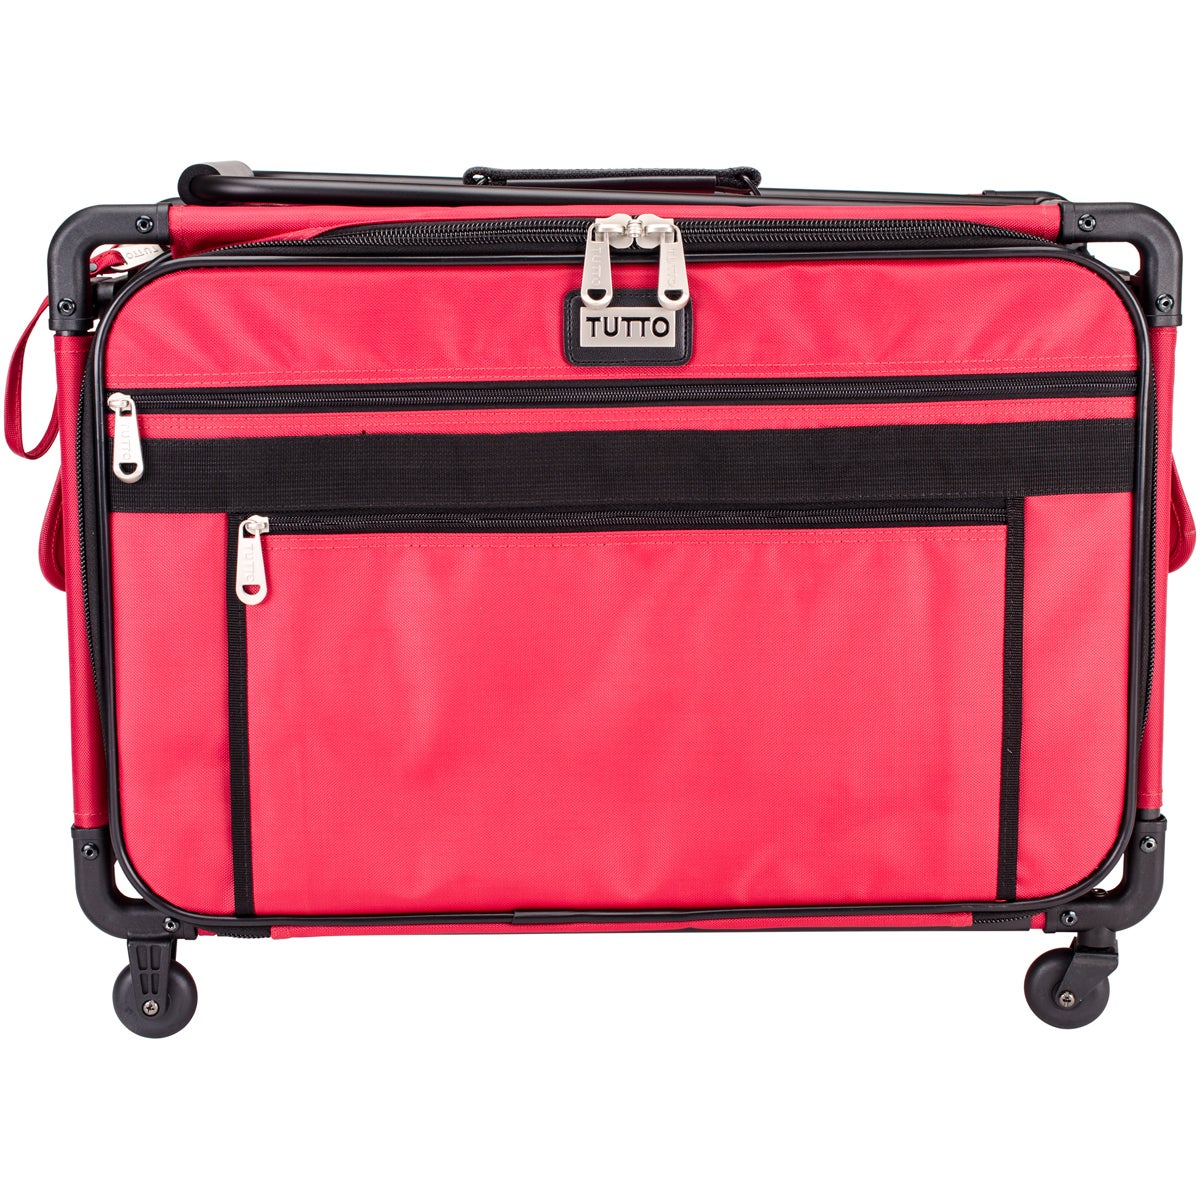 "TUTTO Machine On Wheels Case-23""X14.25""X14"" Red (23""X14.2..."